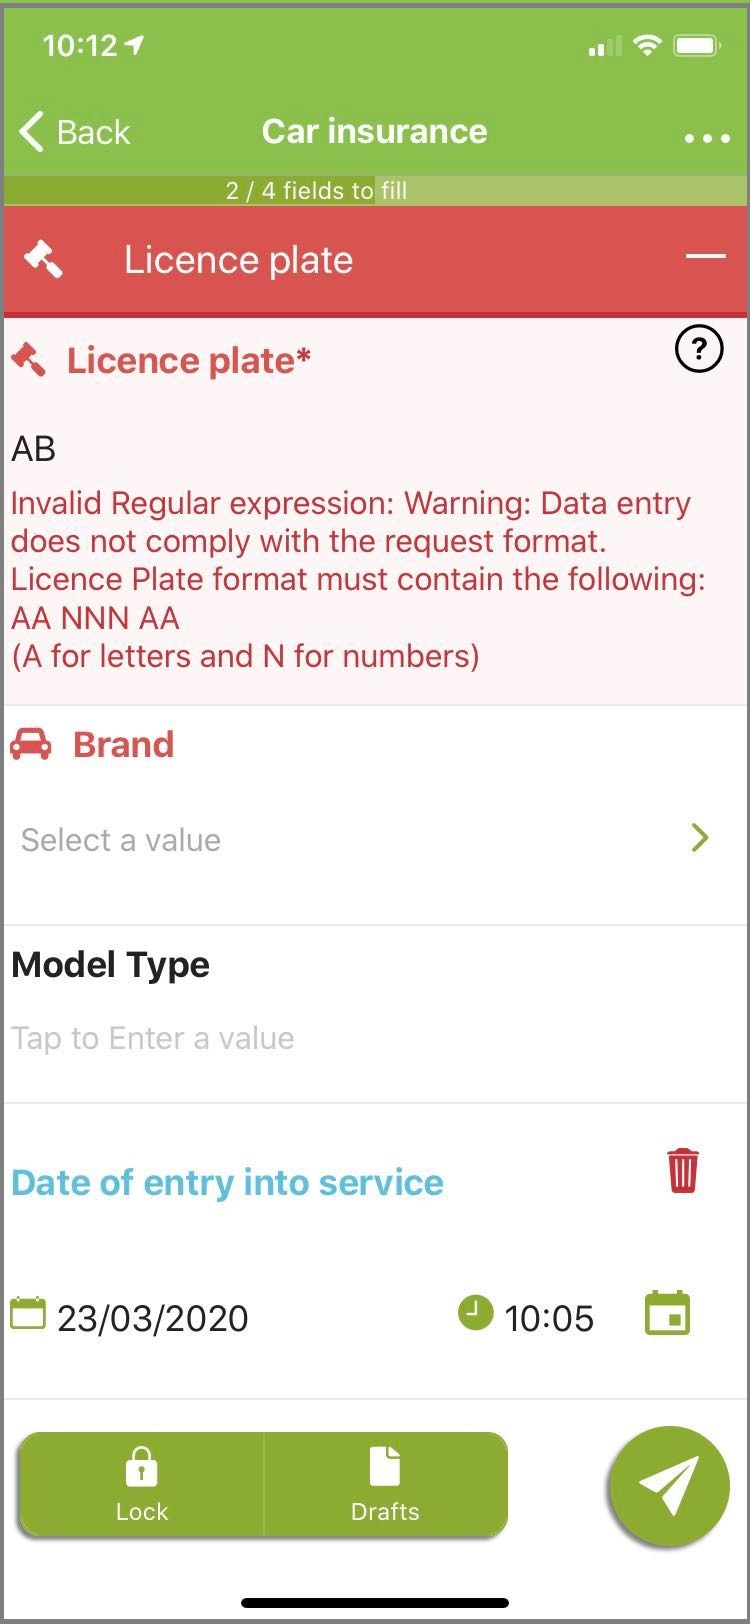 Message displayed to the user informing the form cannot be saved.